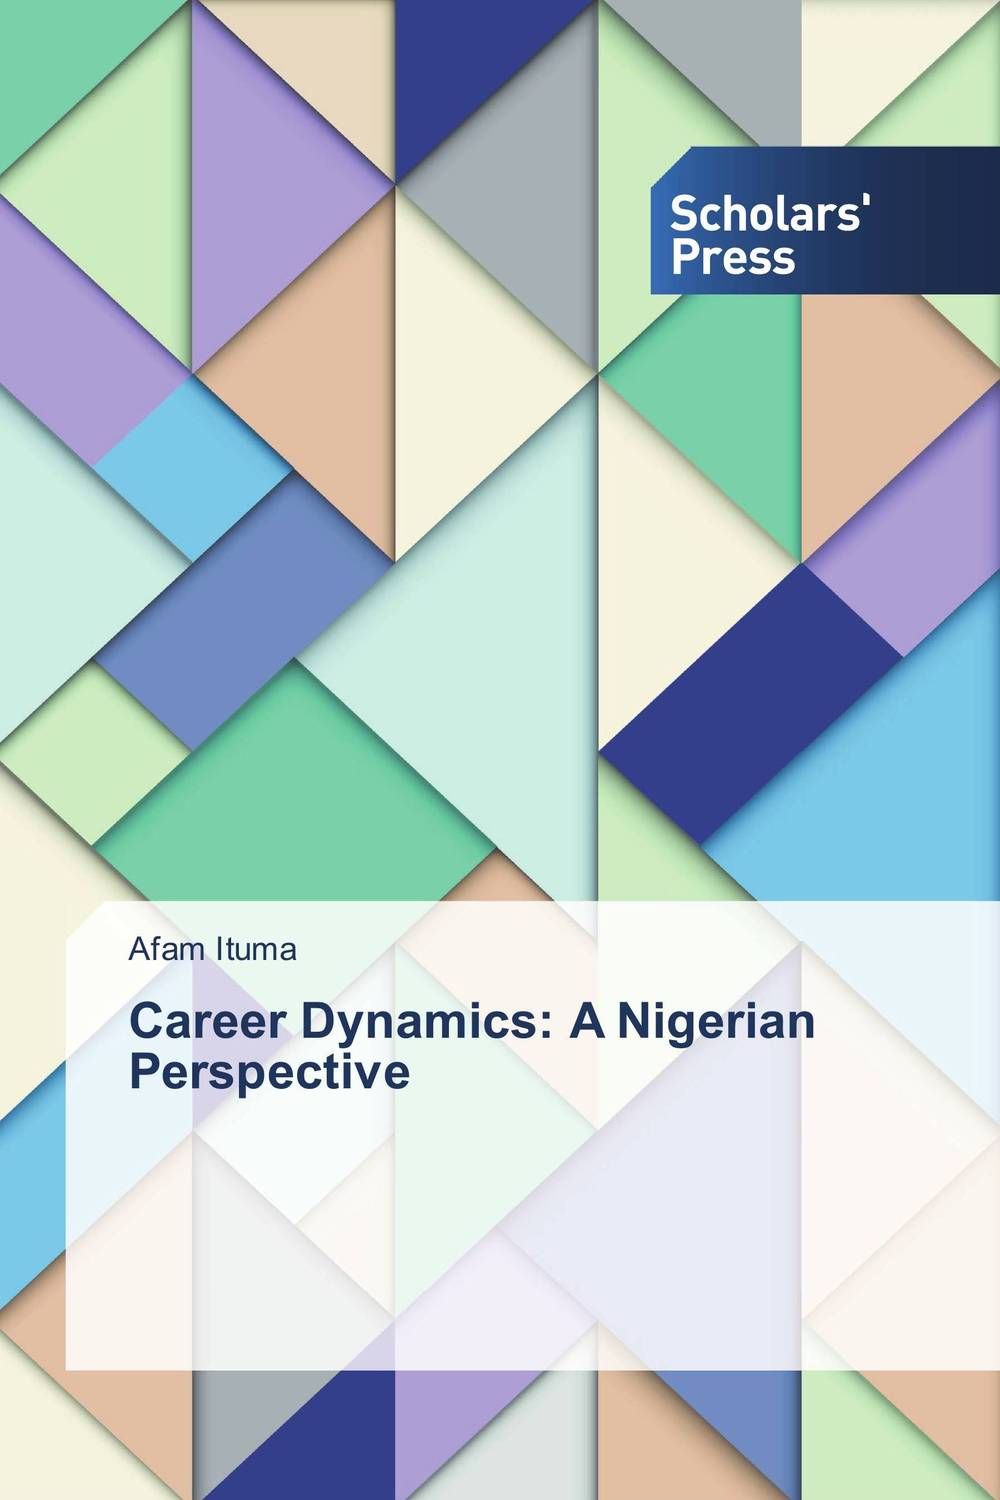 Career Dynamics: A Nigerian Perspective agus immanuel a study on career choice